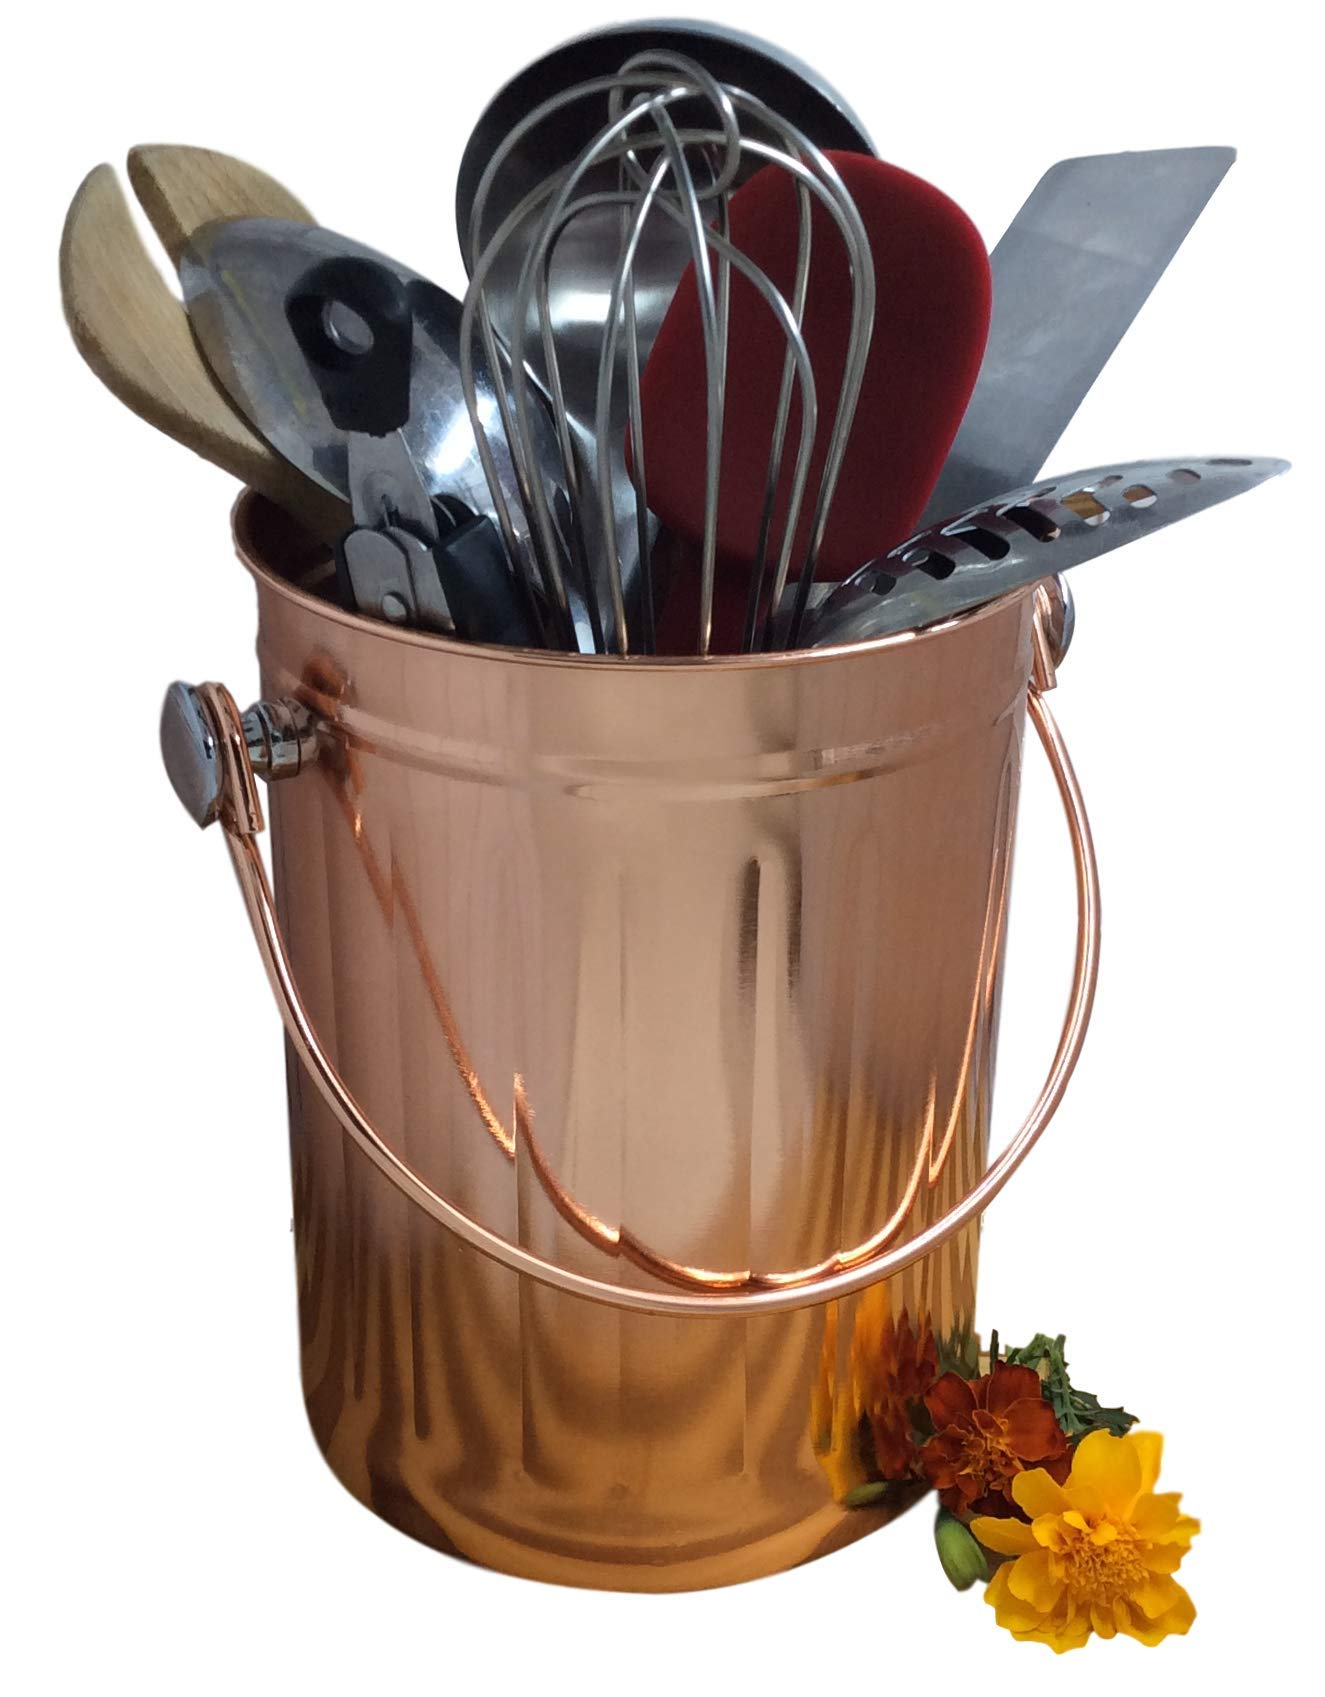 Utensil Holder Caddy Crock to Organize Kitchen Tools - Copper Kitchen Accessories – Large 1 Gallon Capacity